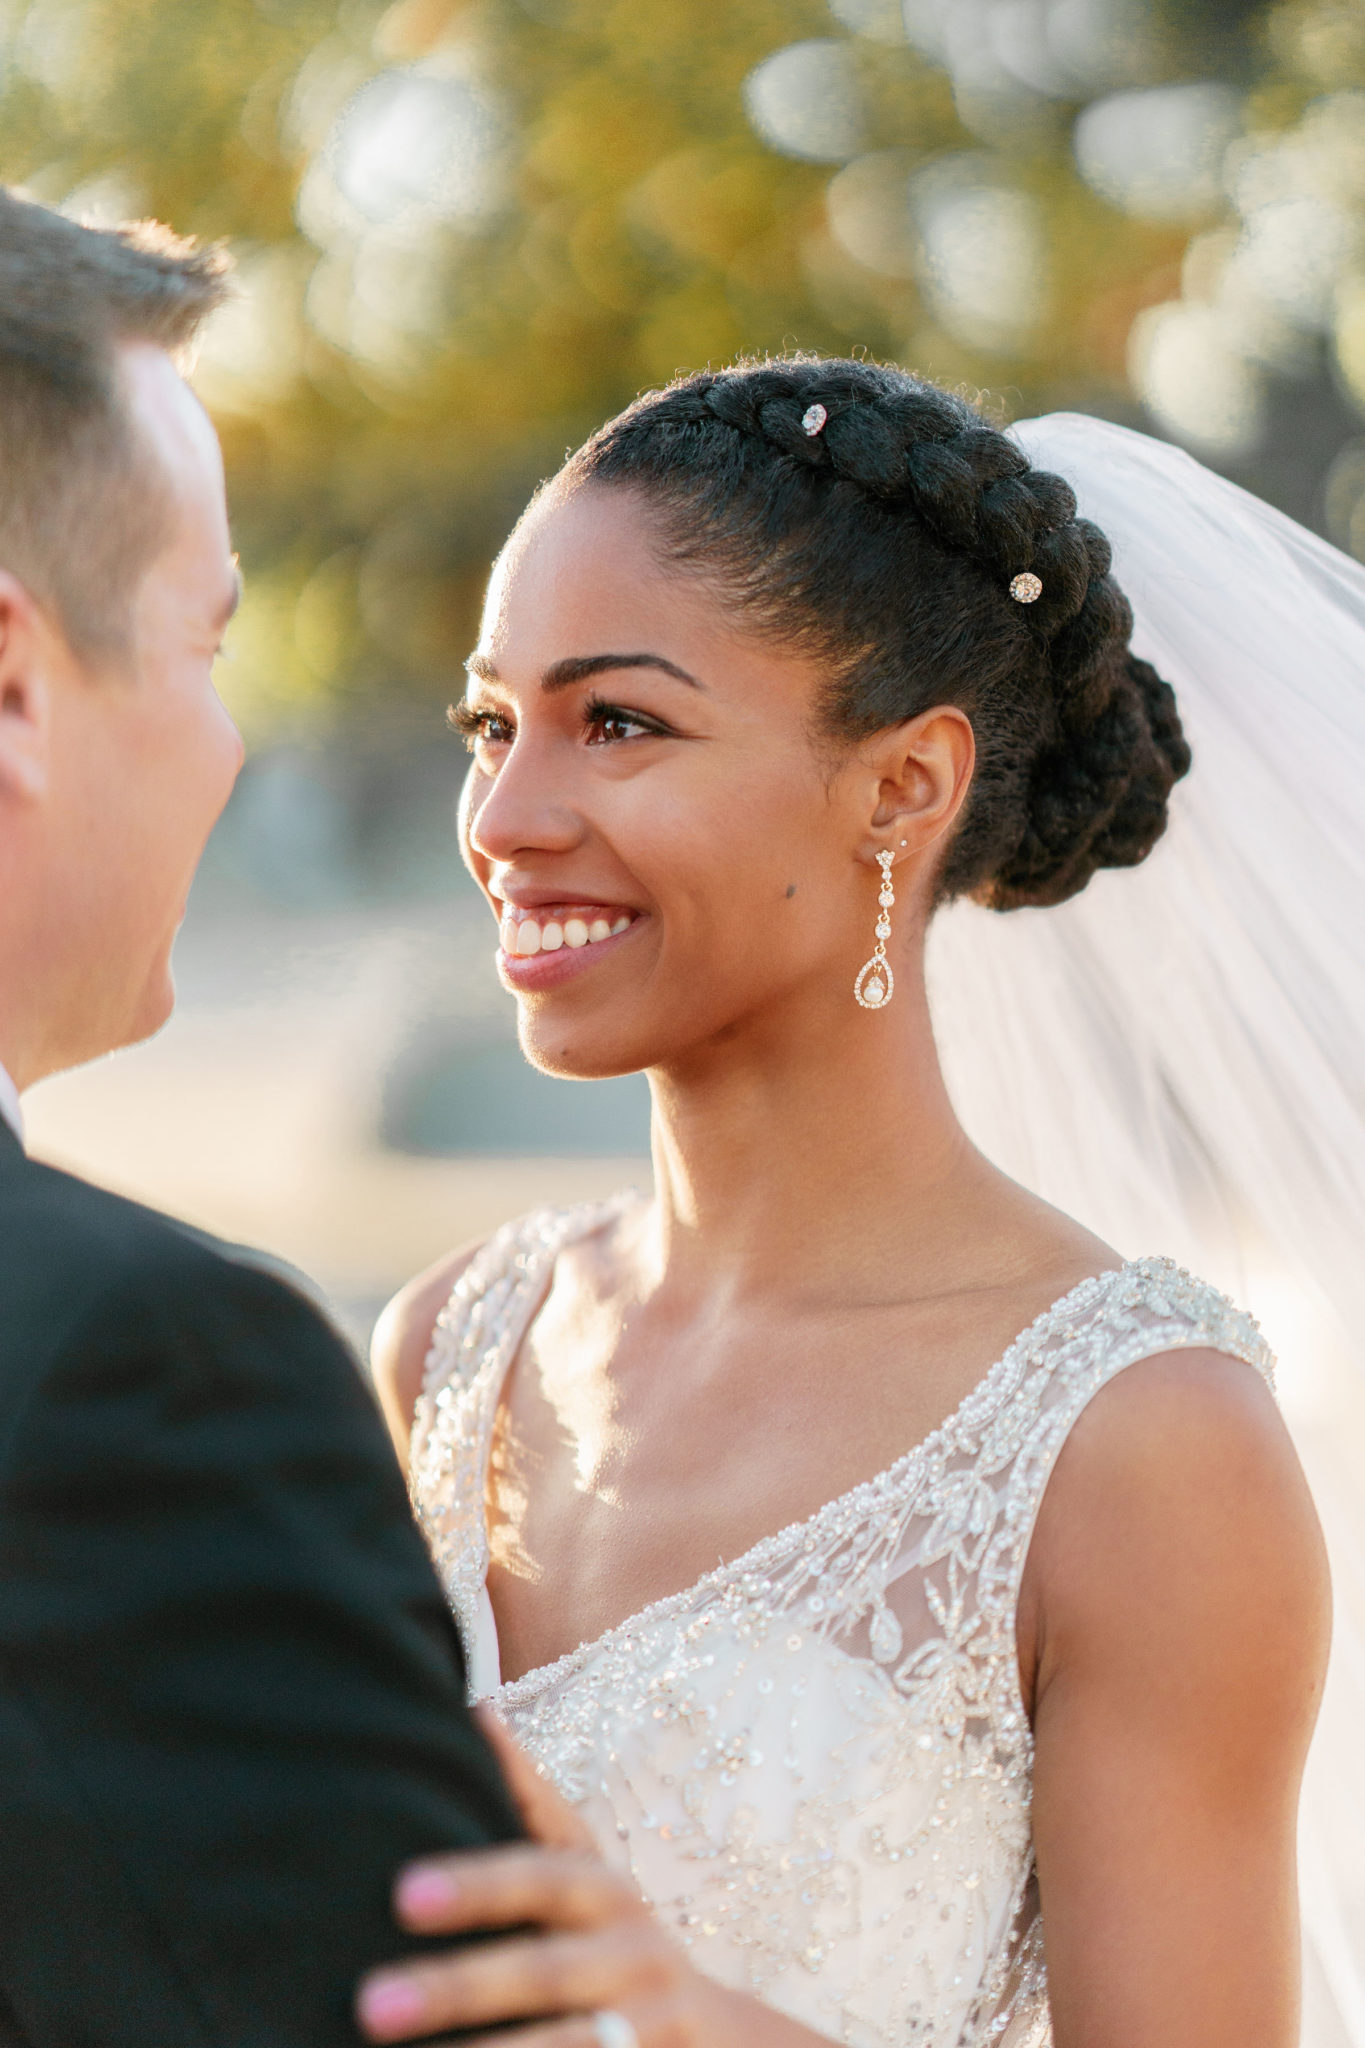 French-Braid-with-Short-Bun-Hairstyle Most Beautiful Natural Hairstyles for Wedding